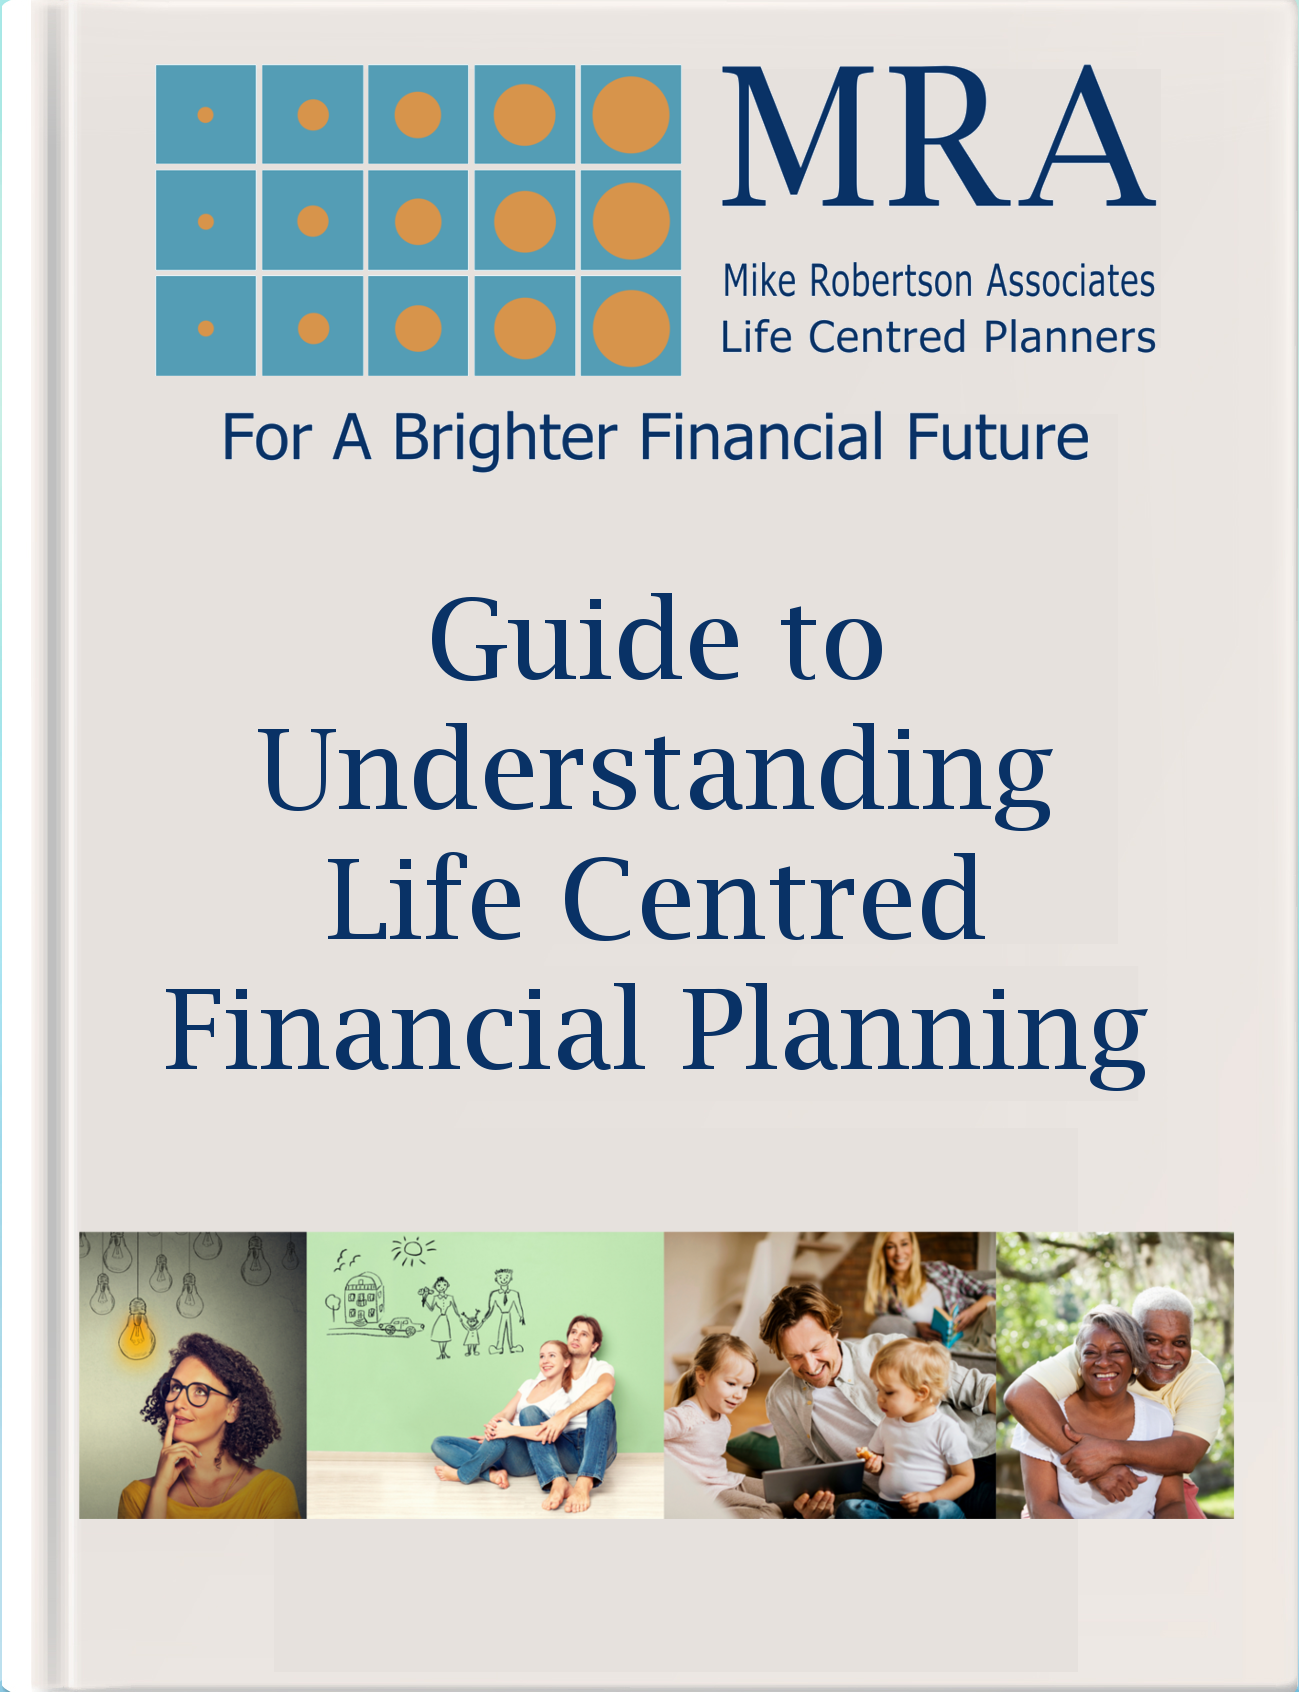 Download our Guide to Lifestyle Financial Planning